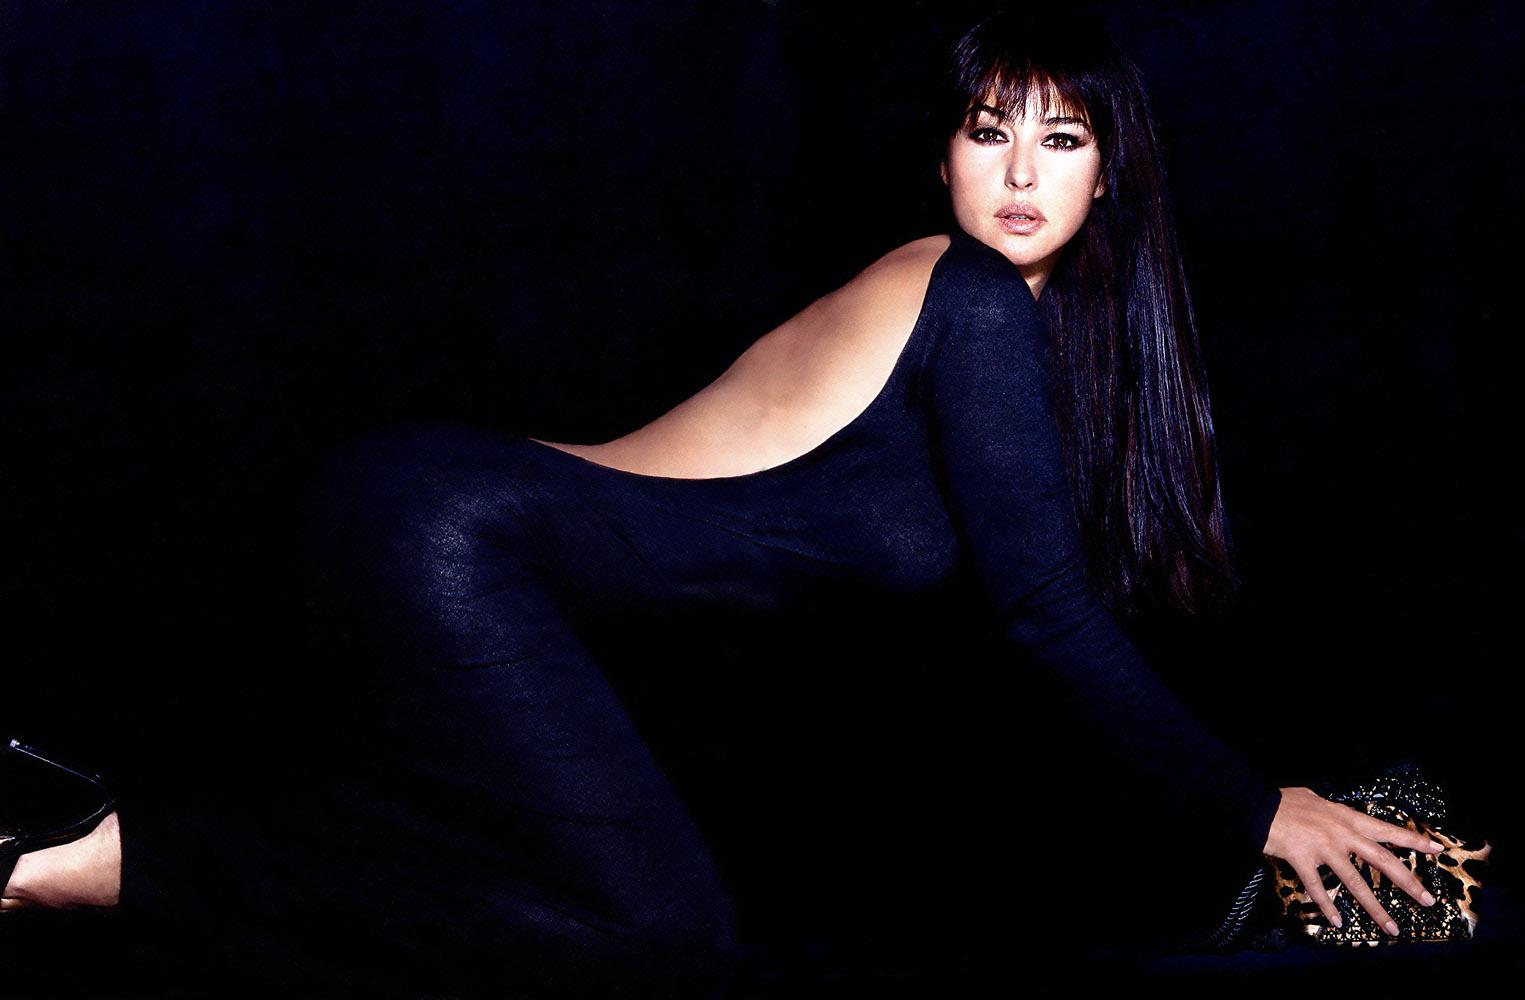 Monica Bellucci Hot Best Quality Hd Pictures - All Hd -4044